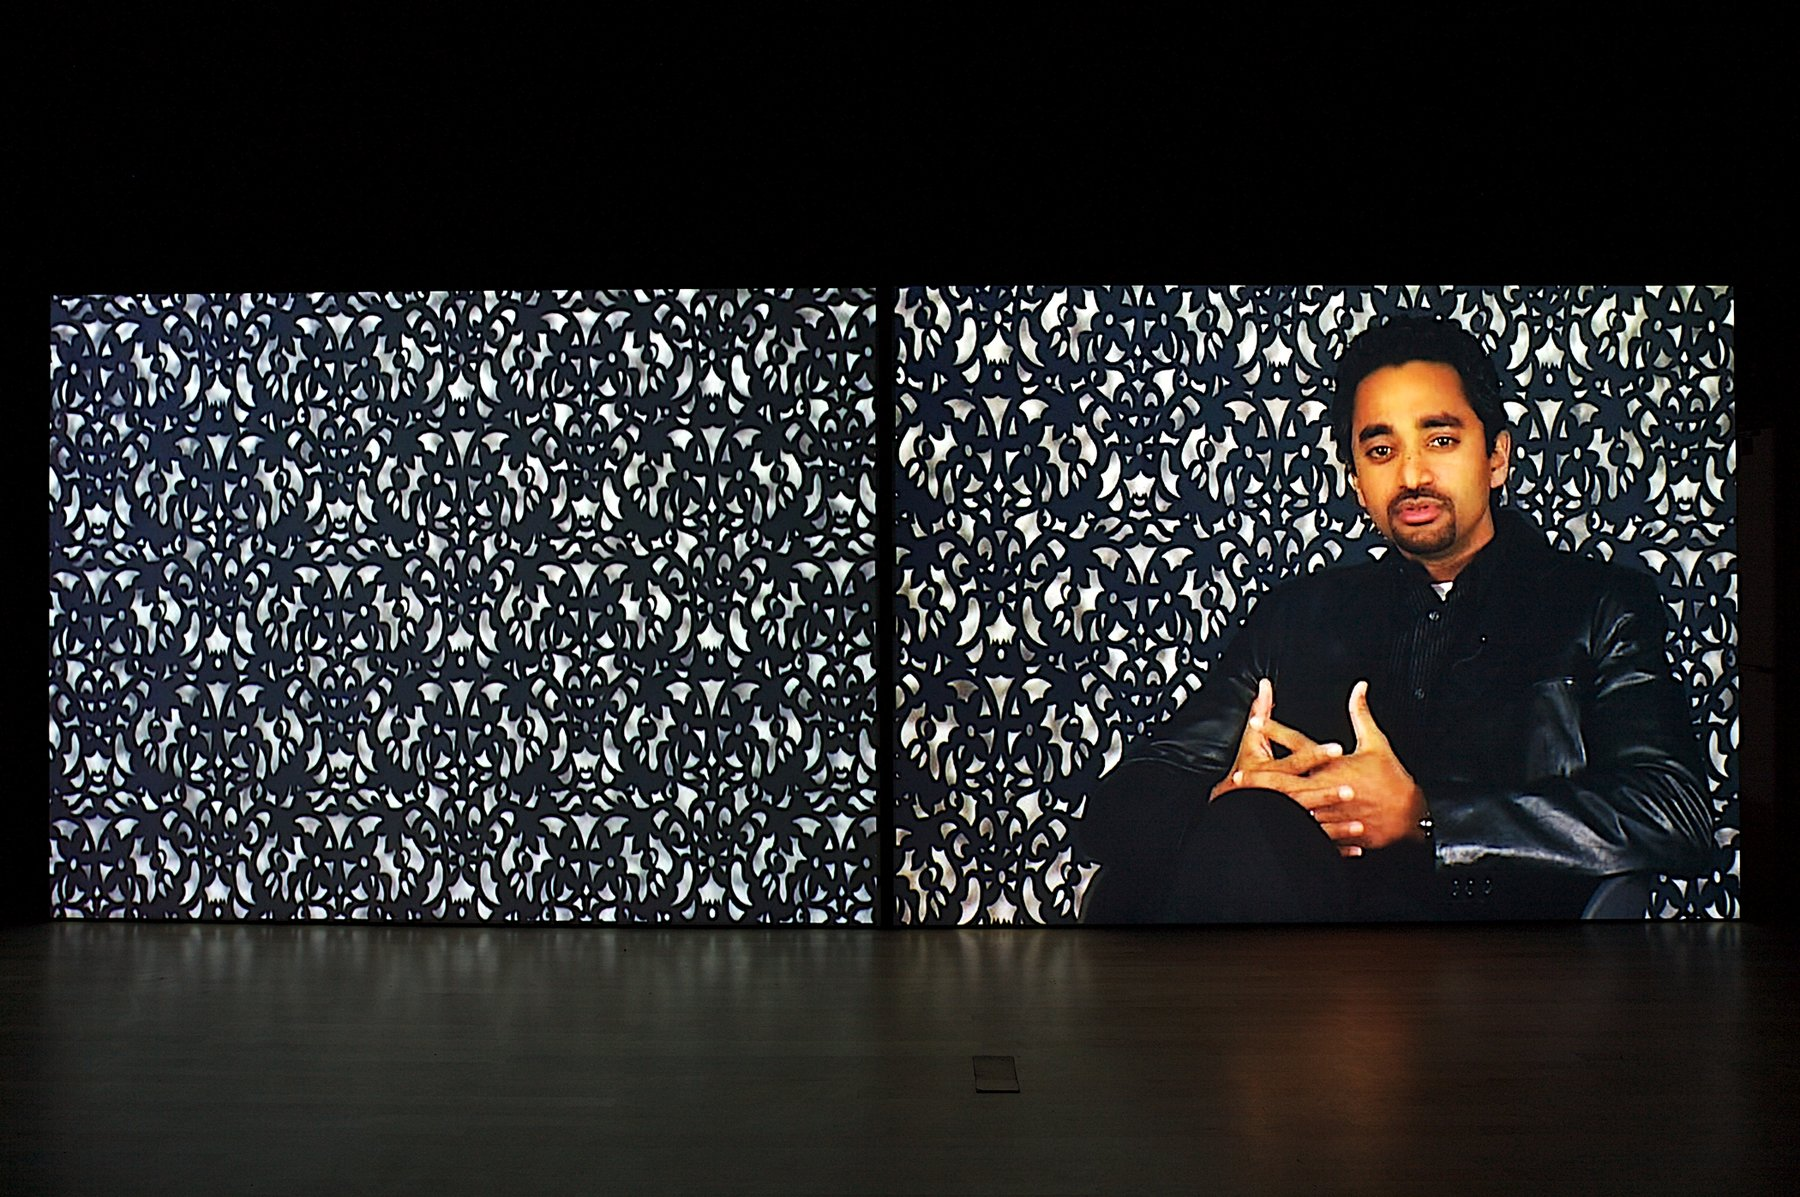 An image of a man sitting in front of a patterned wall